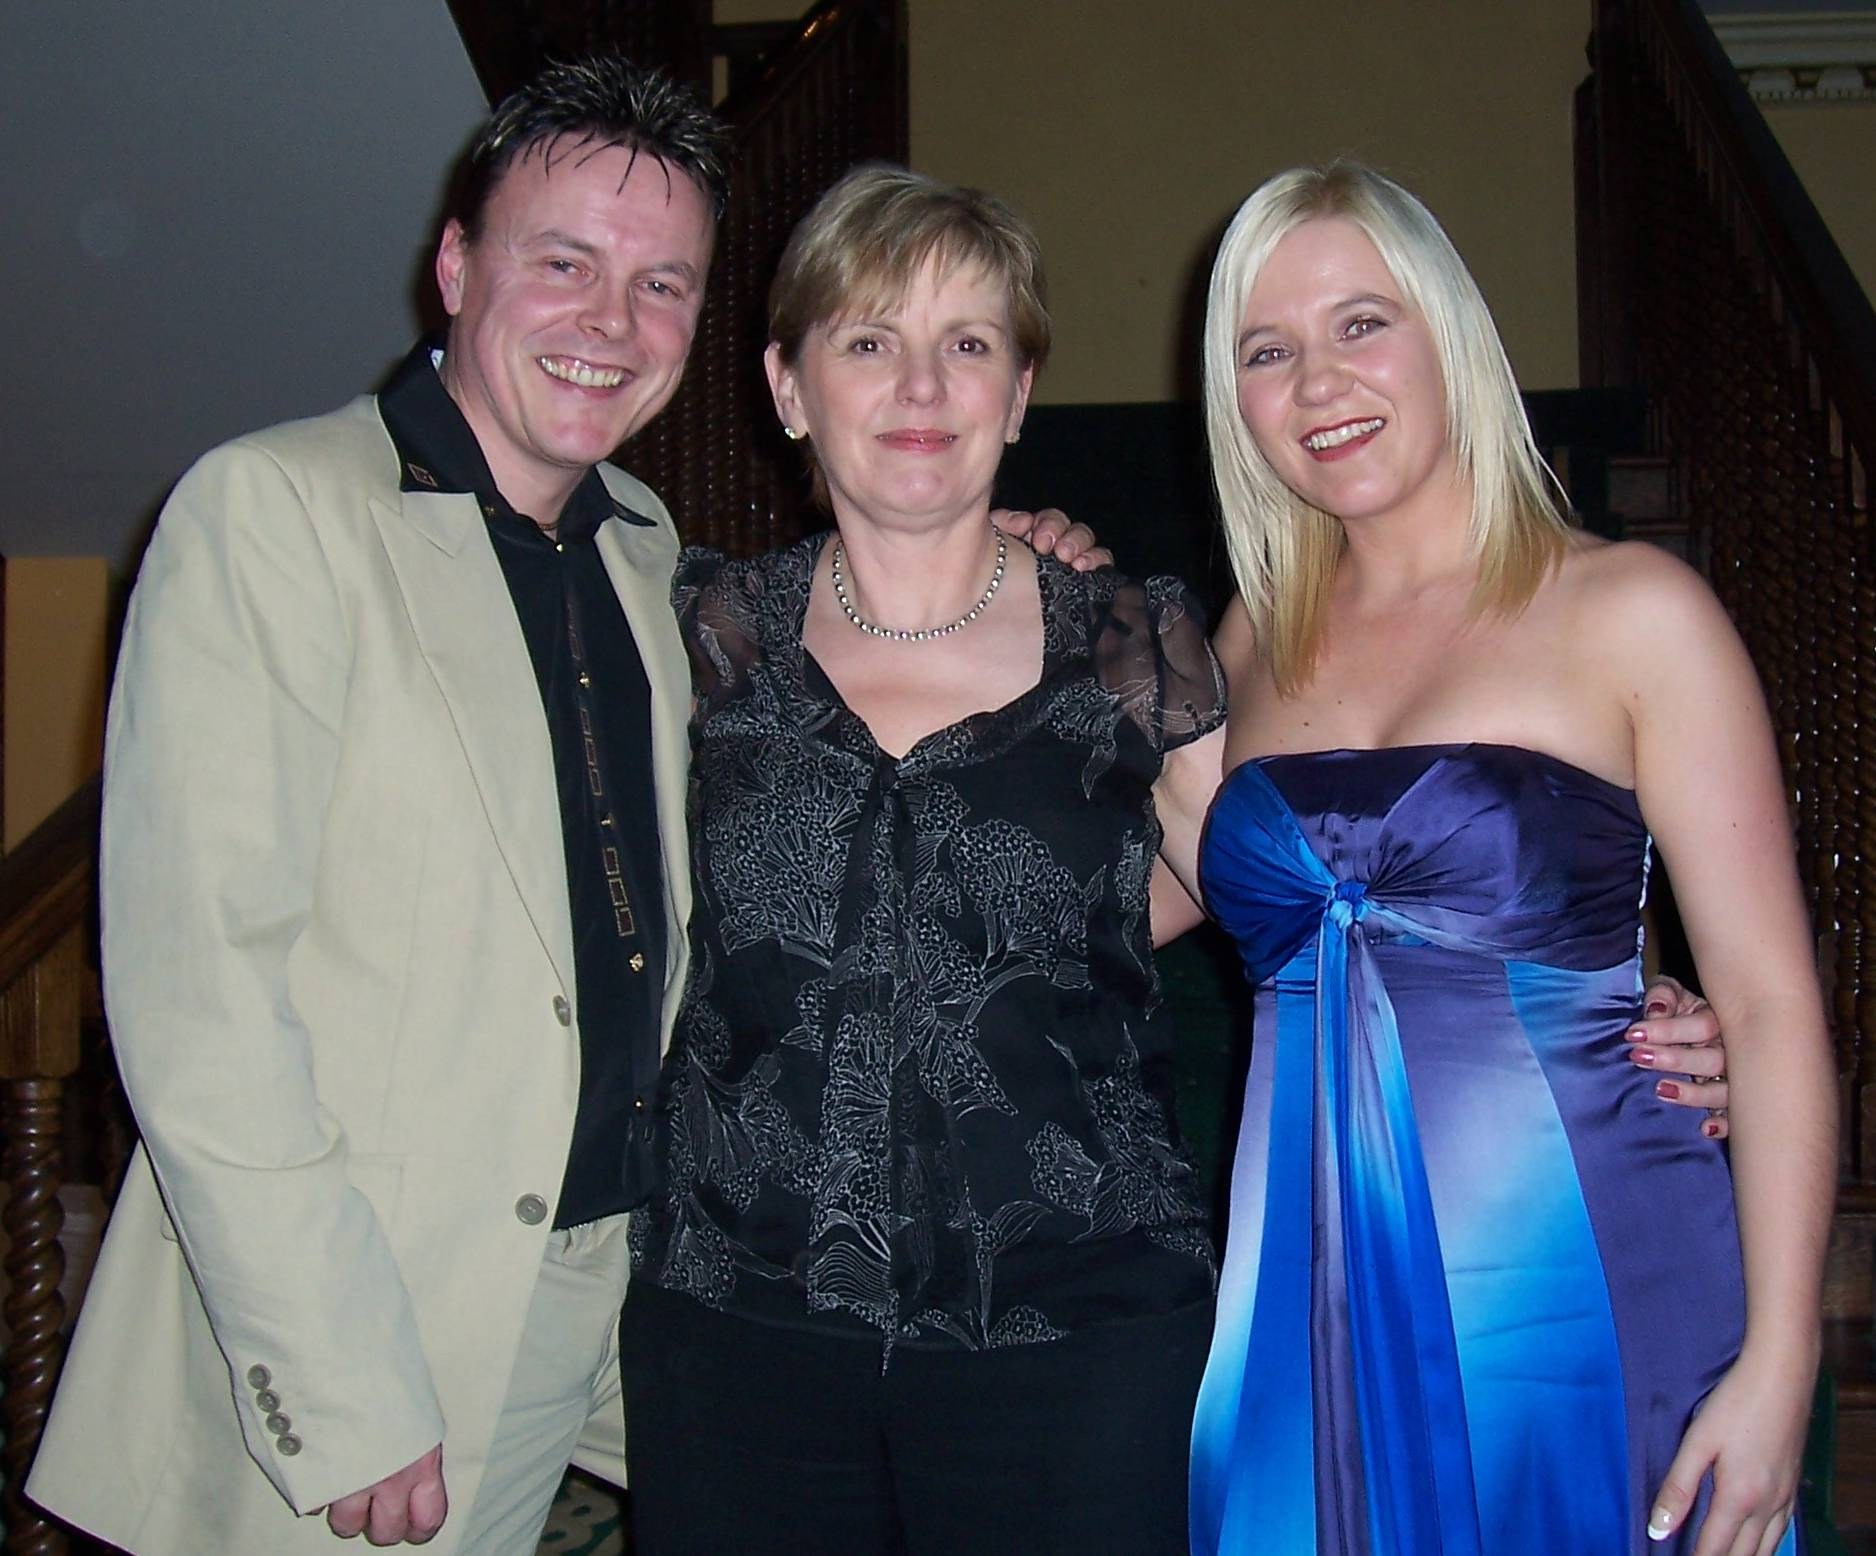 TM, Denise Frazer & FE at Awards, Setanta House Hotel, Kildare